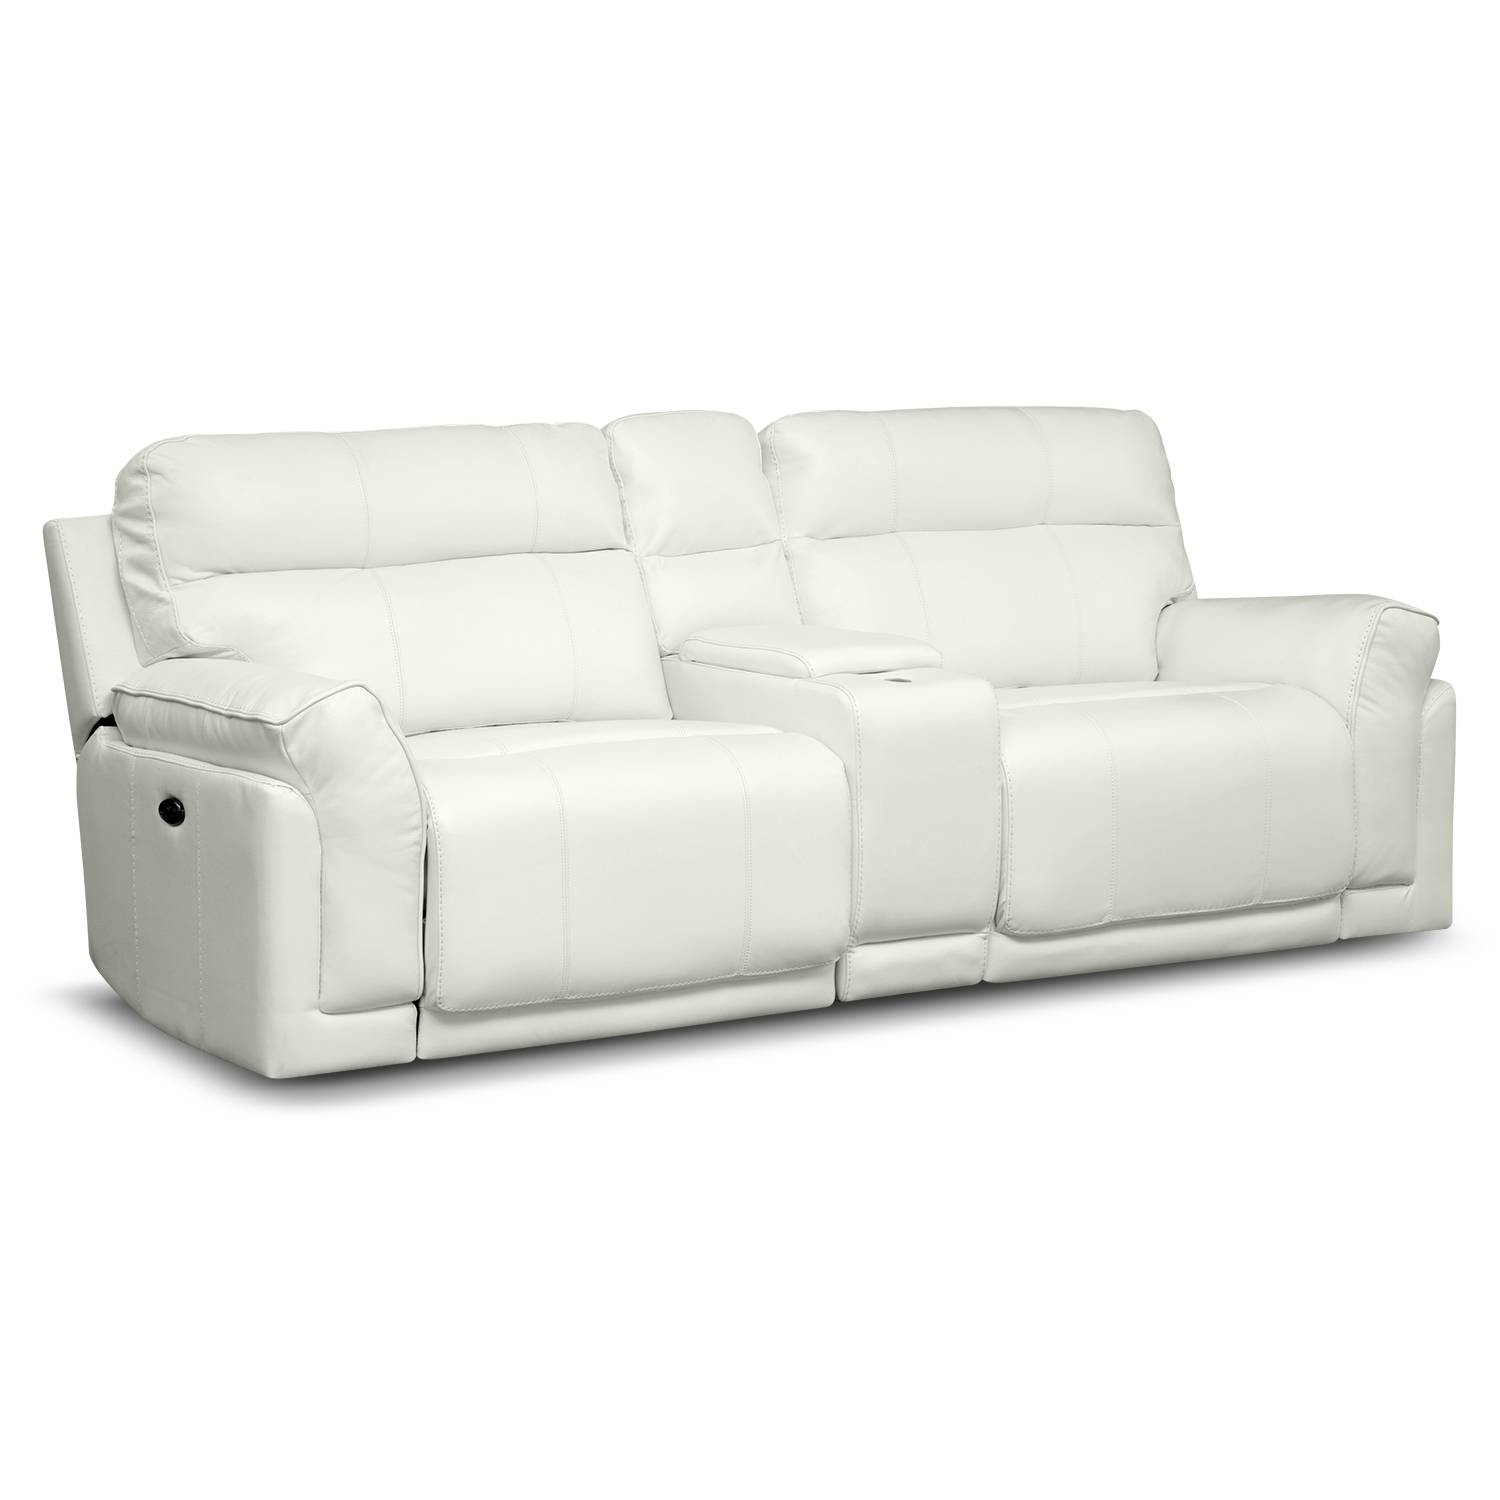 Sofas Center : Magnificent Reclining Sofath Console Images Concept pertaining to Sofas With Consoles (Image 14 of 30)